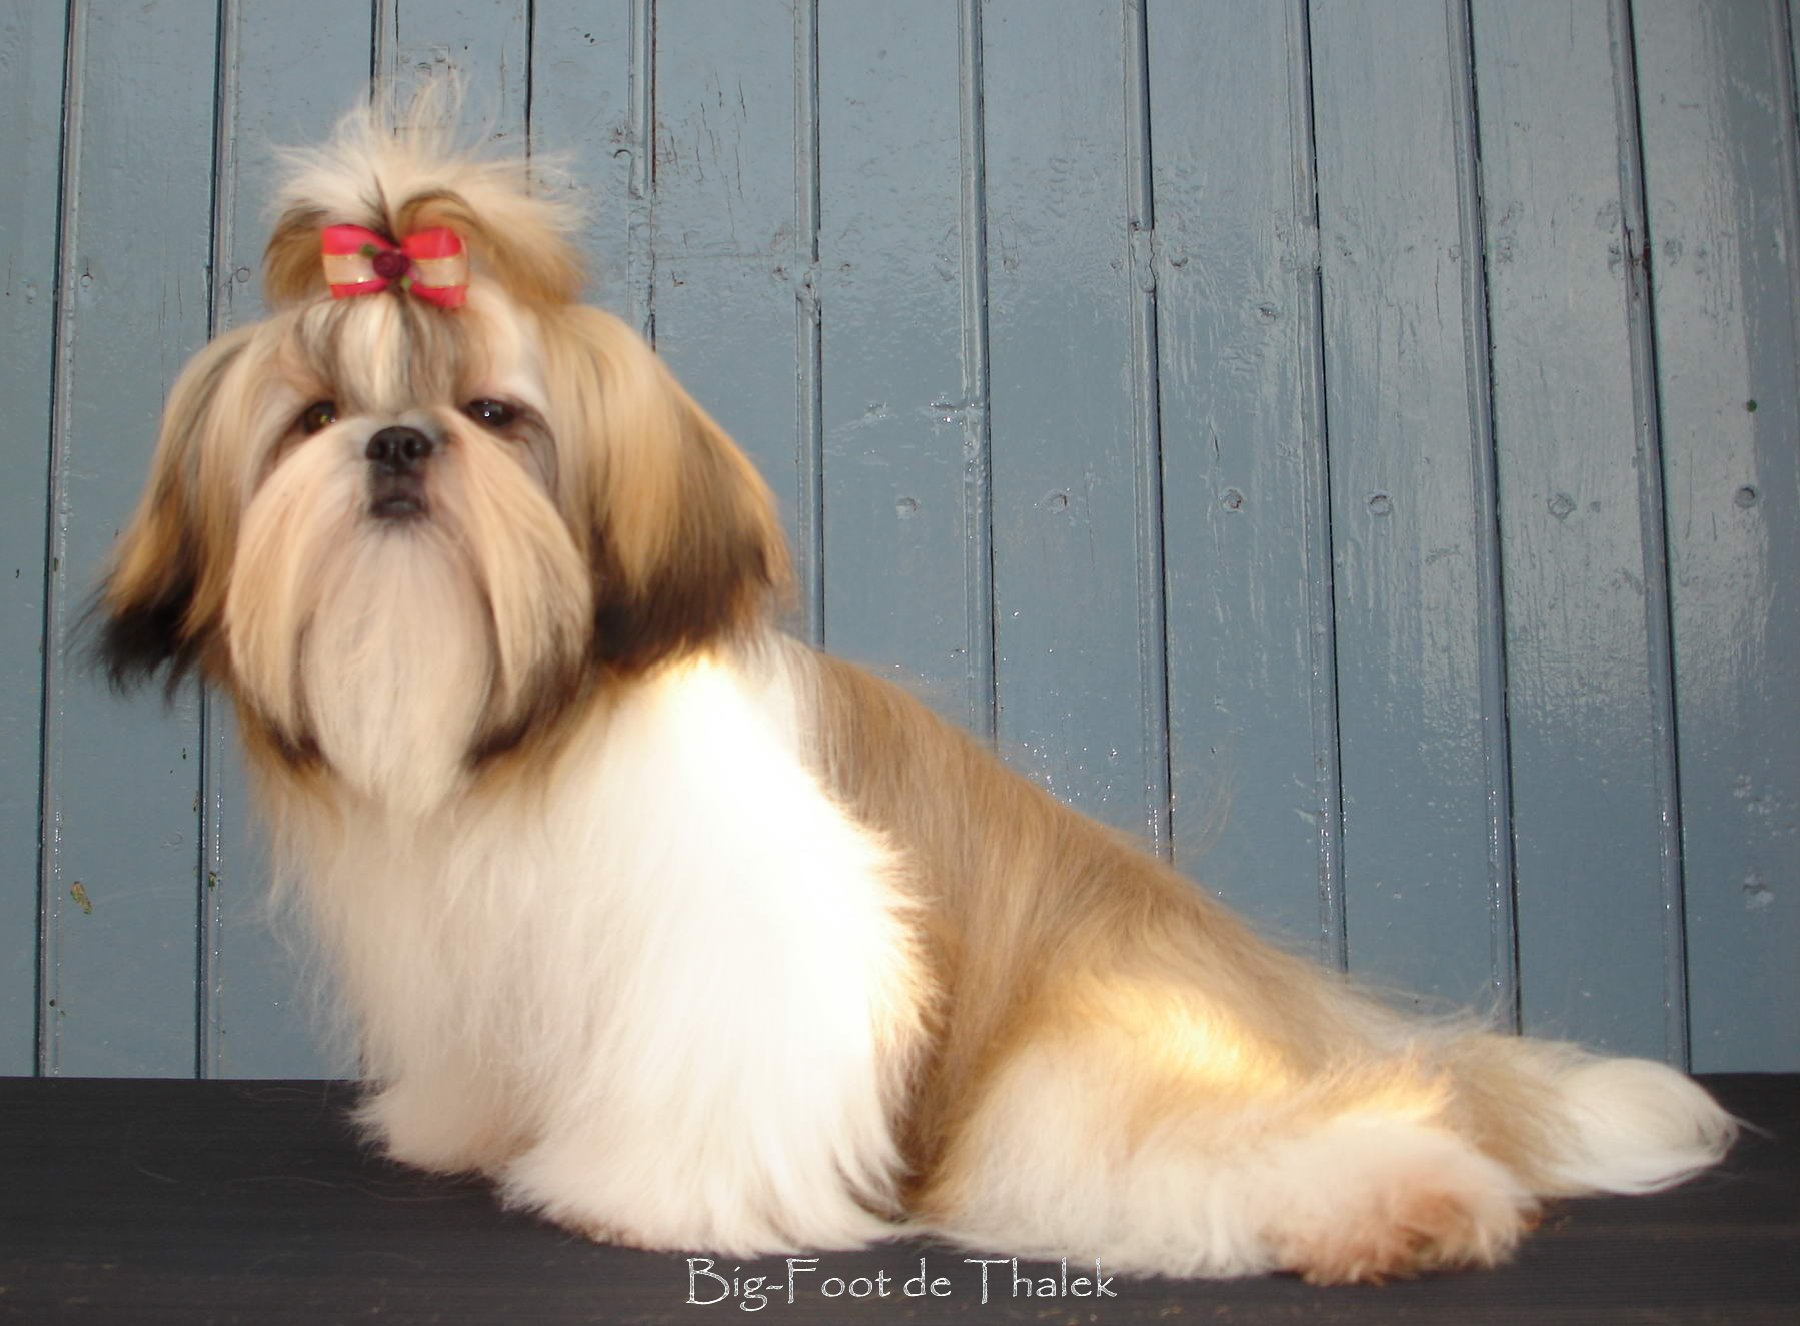 Shih Tzu. Big Foot De Thalek A Lovely Dream.